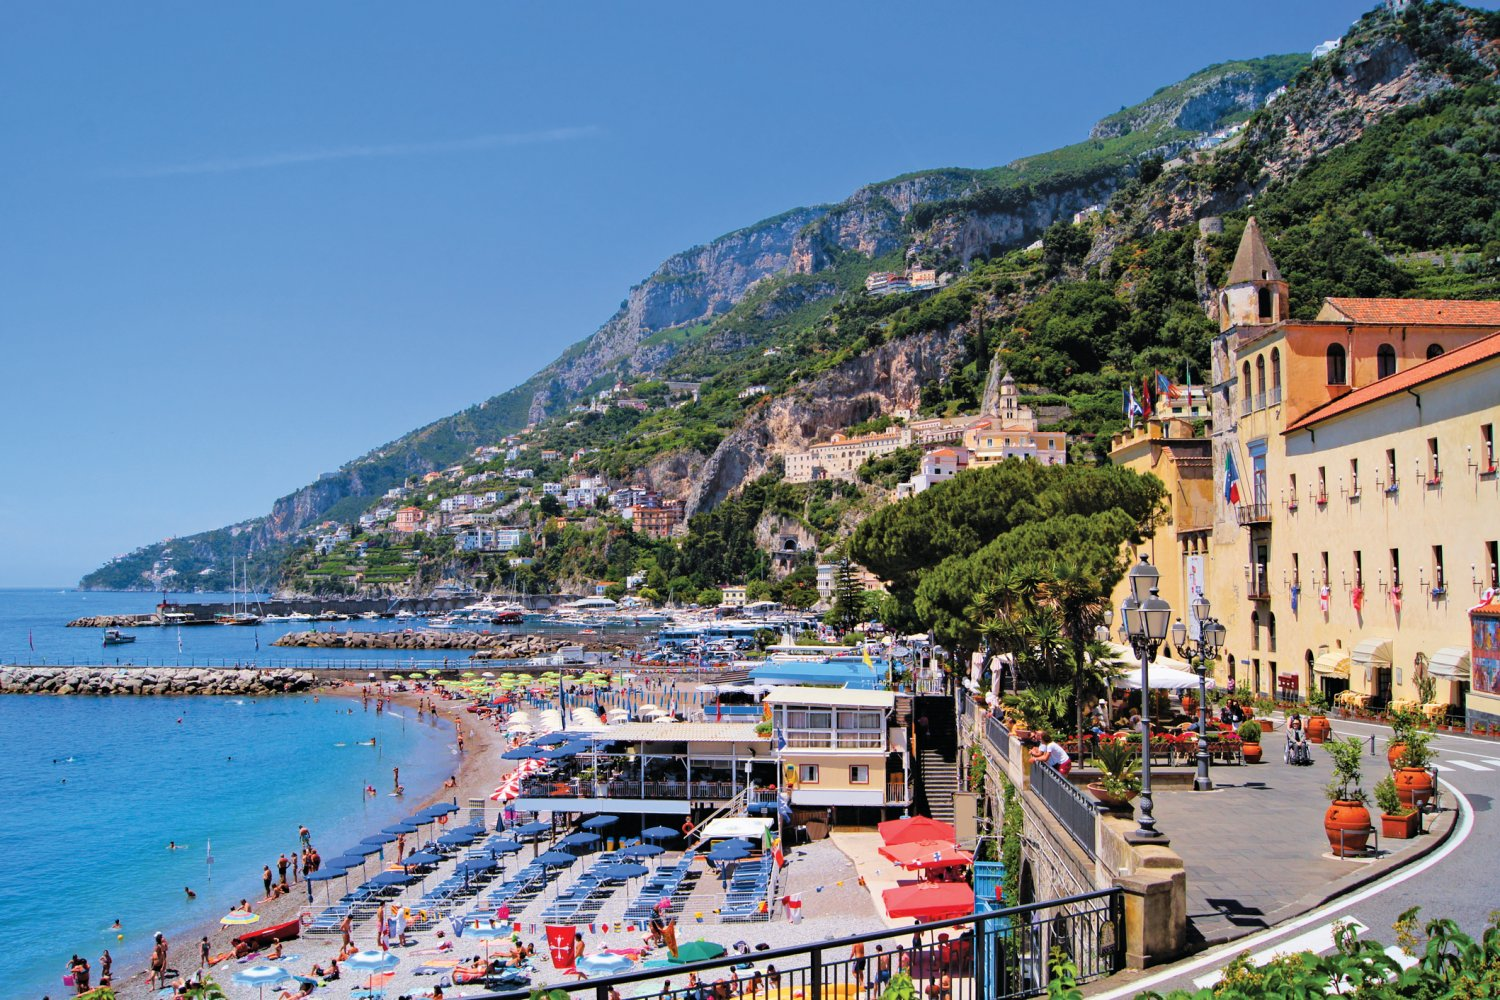 best beaches near Sorrento, Marina grande